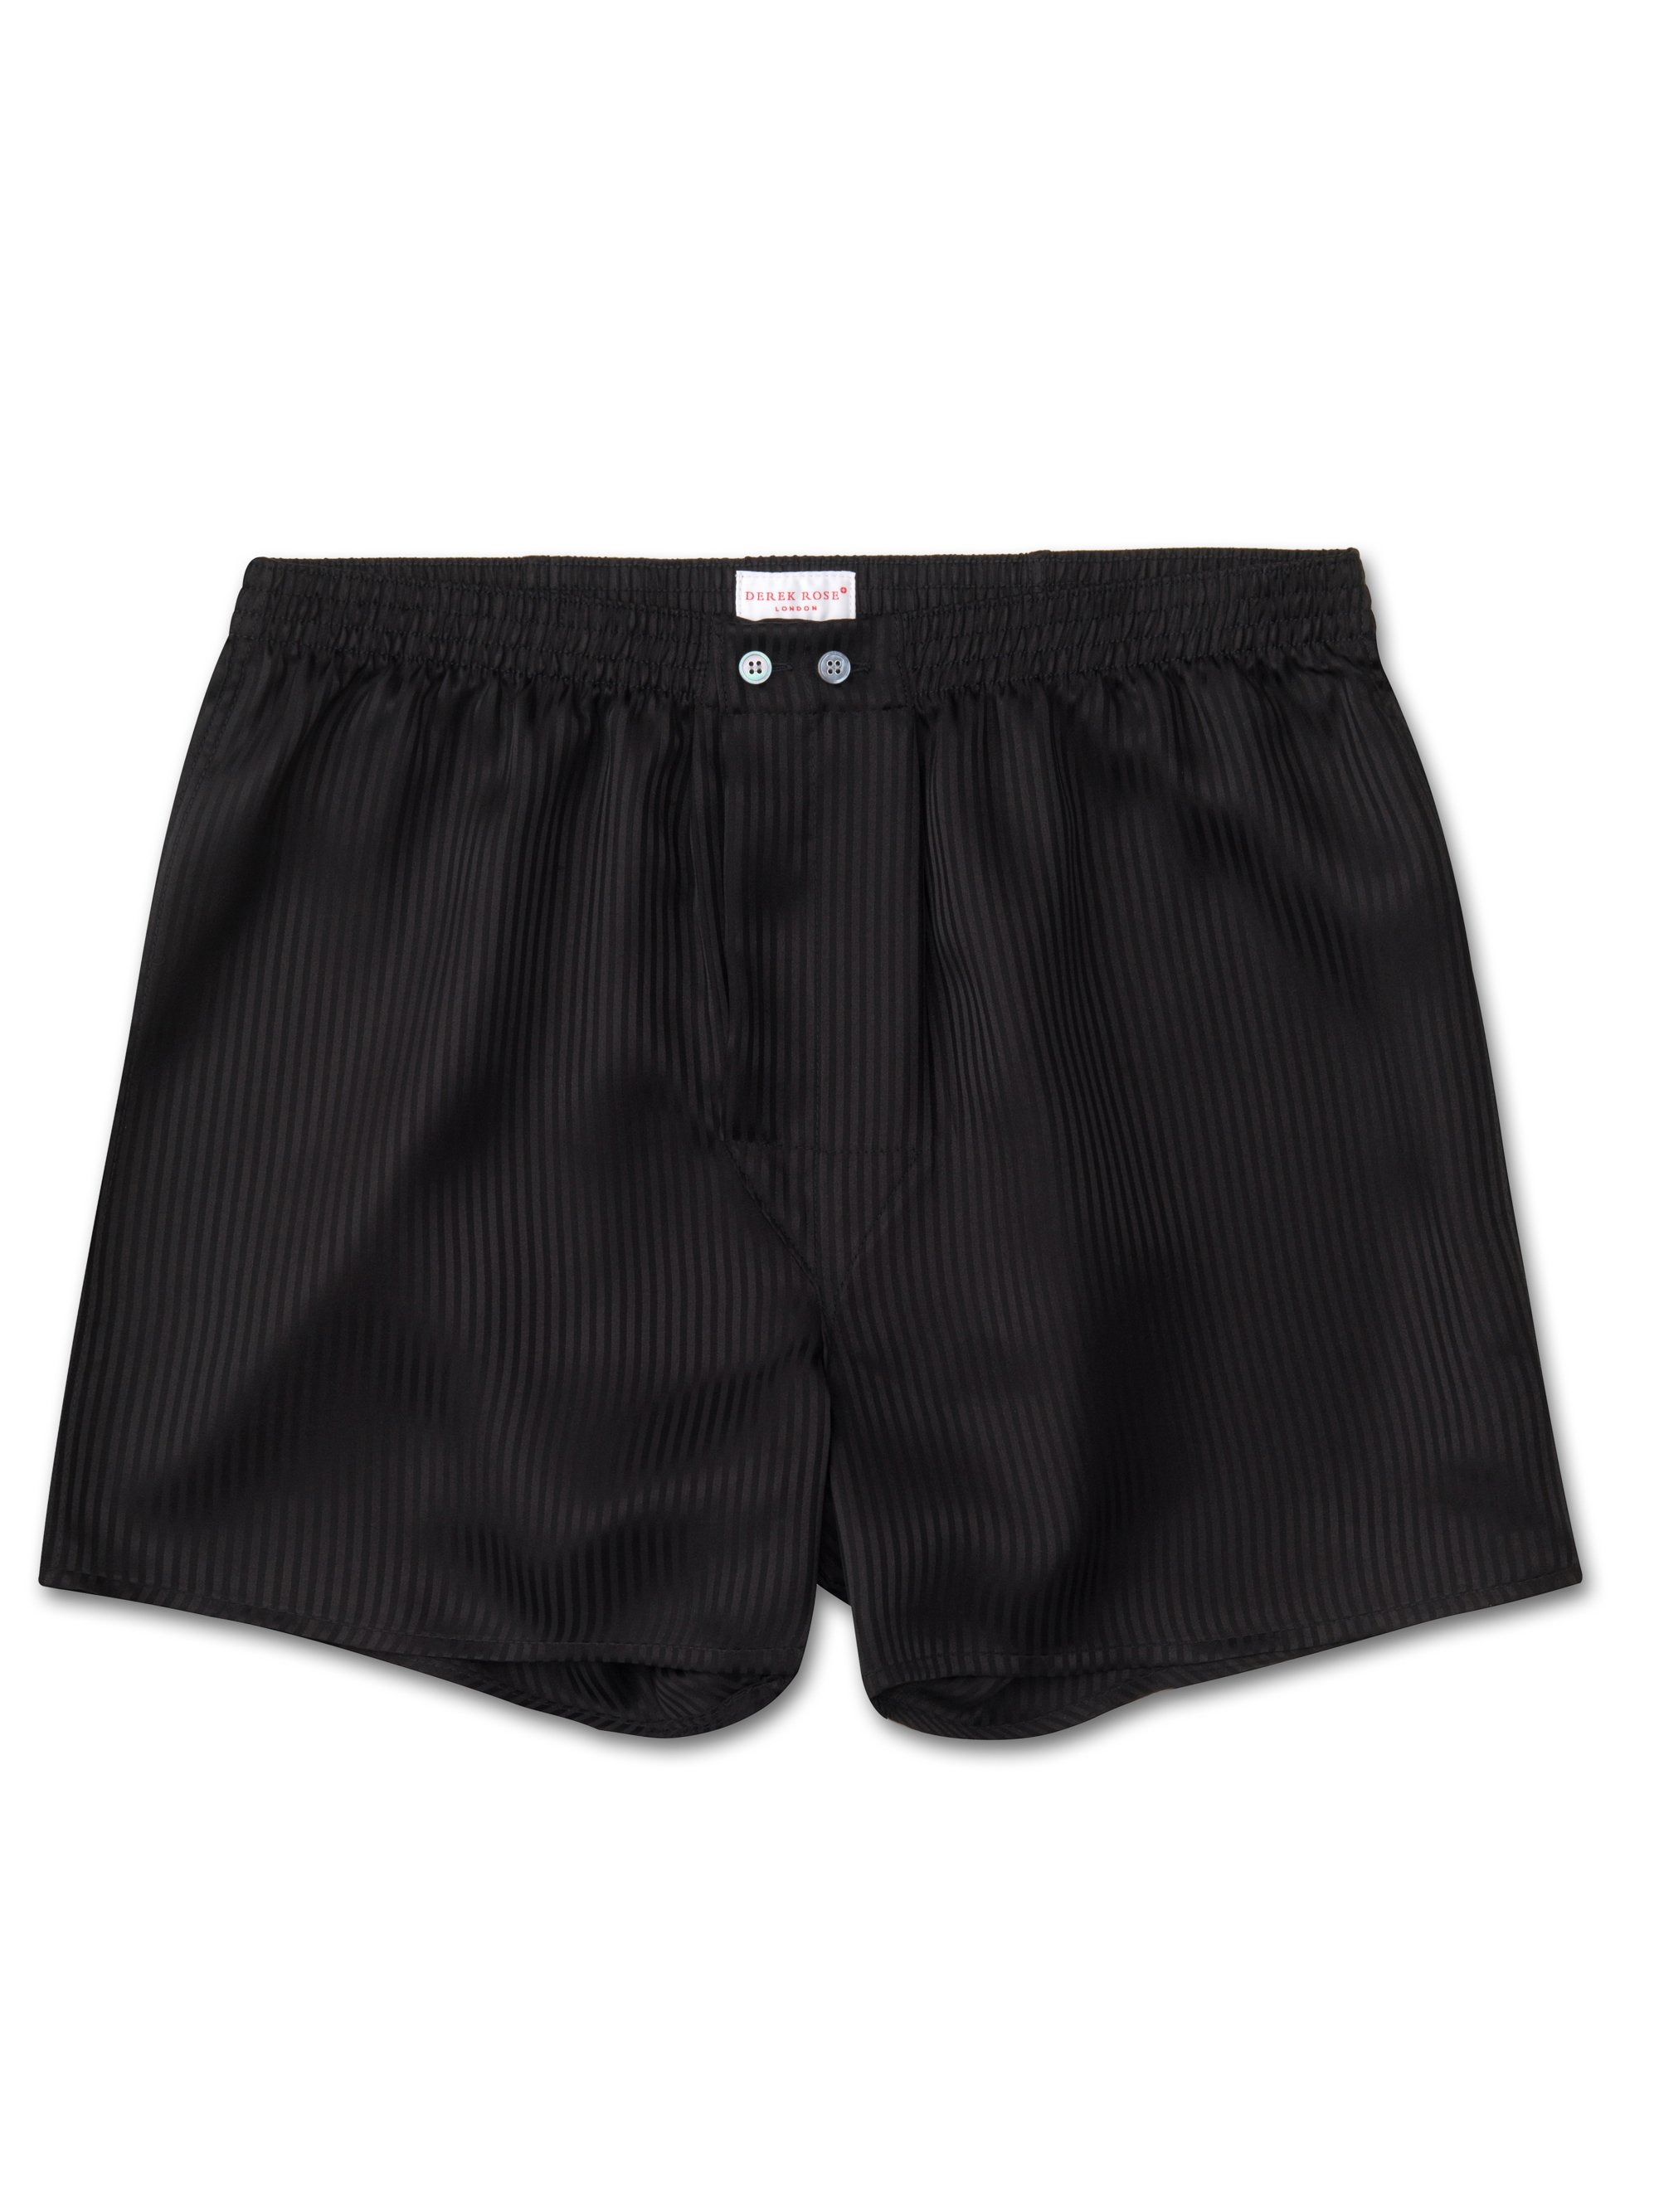 Men's Classic Fit Boxer Shorts Woburn Pure Silk Satin Stripe Black